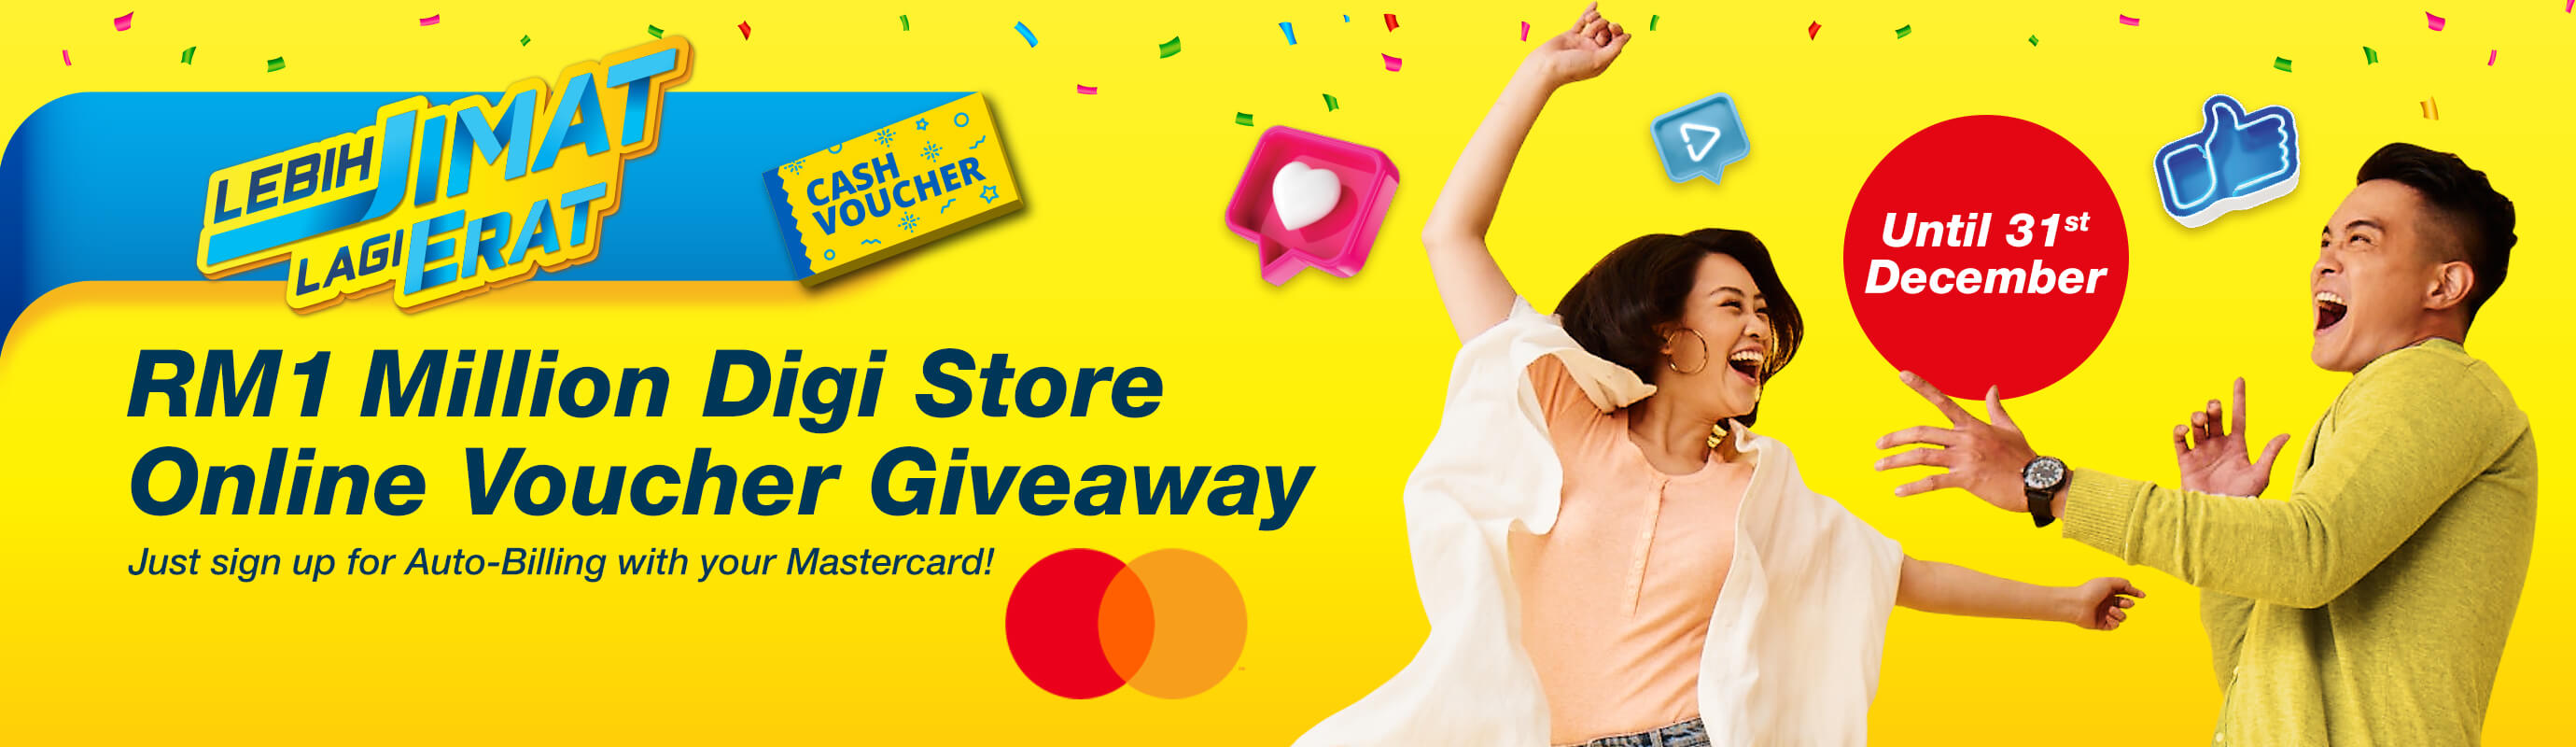 rm1 million voucher giveaway mastercard